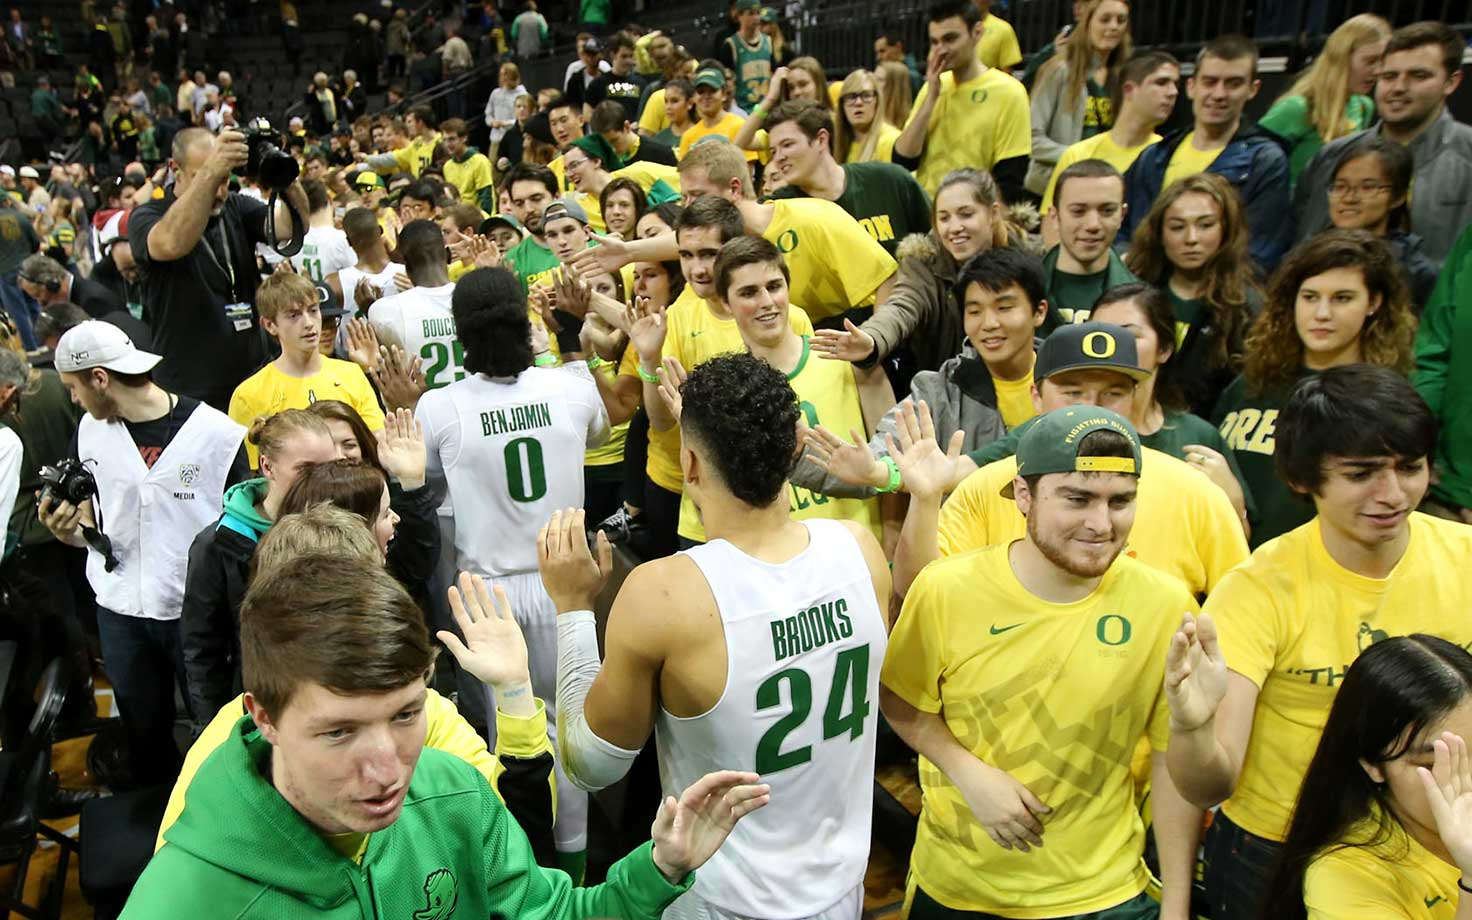 Oregon players, including Dillon Brooks, center, celebrate with student fans after beating Southern California in Eugene, Ore.